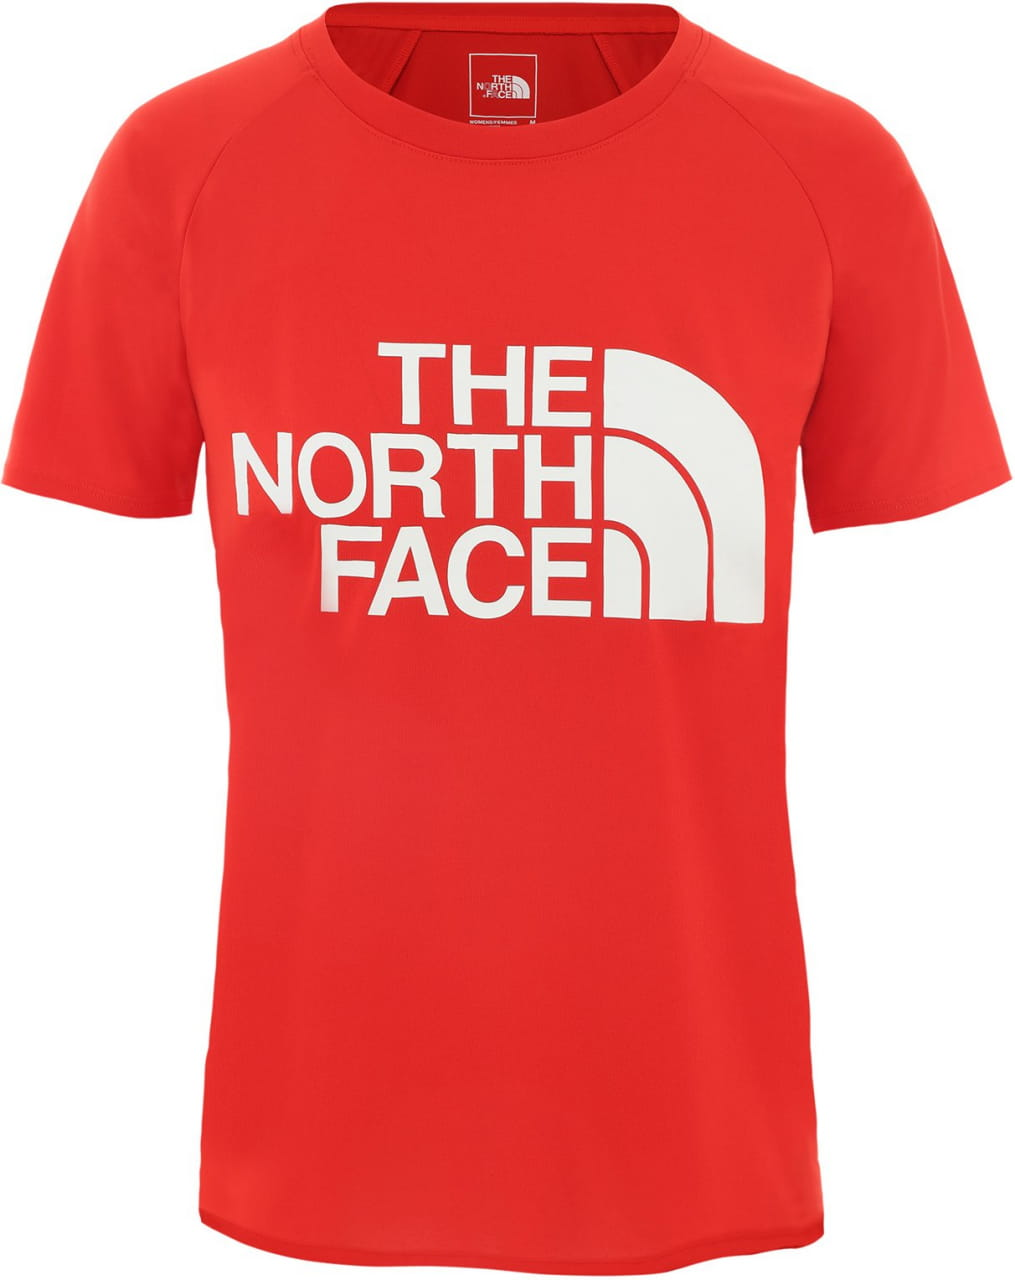 T-Shirts The North Face Women's Graphic Play Hard T-Shirt